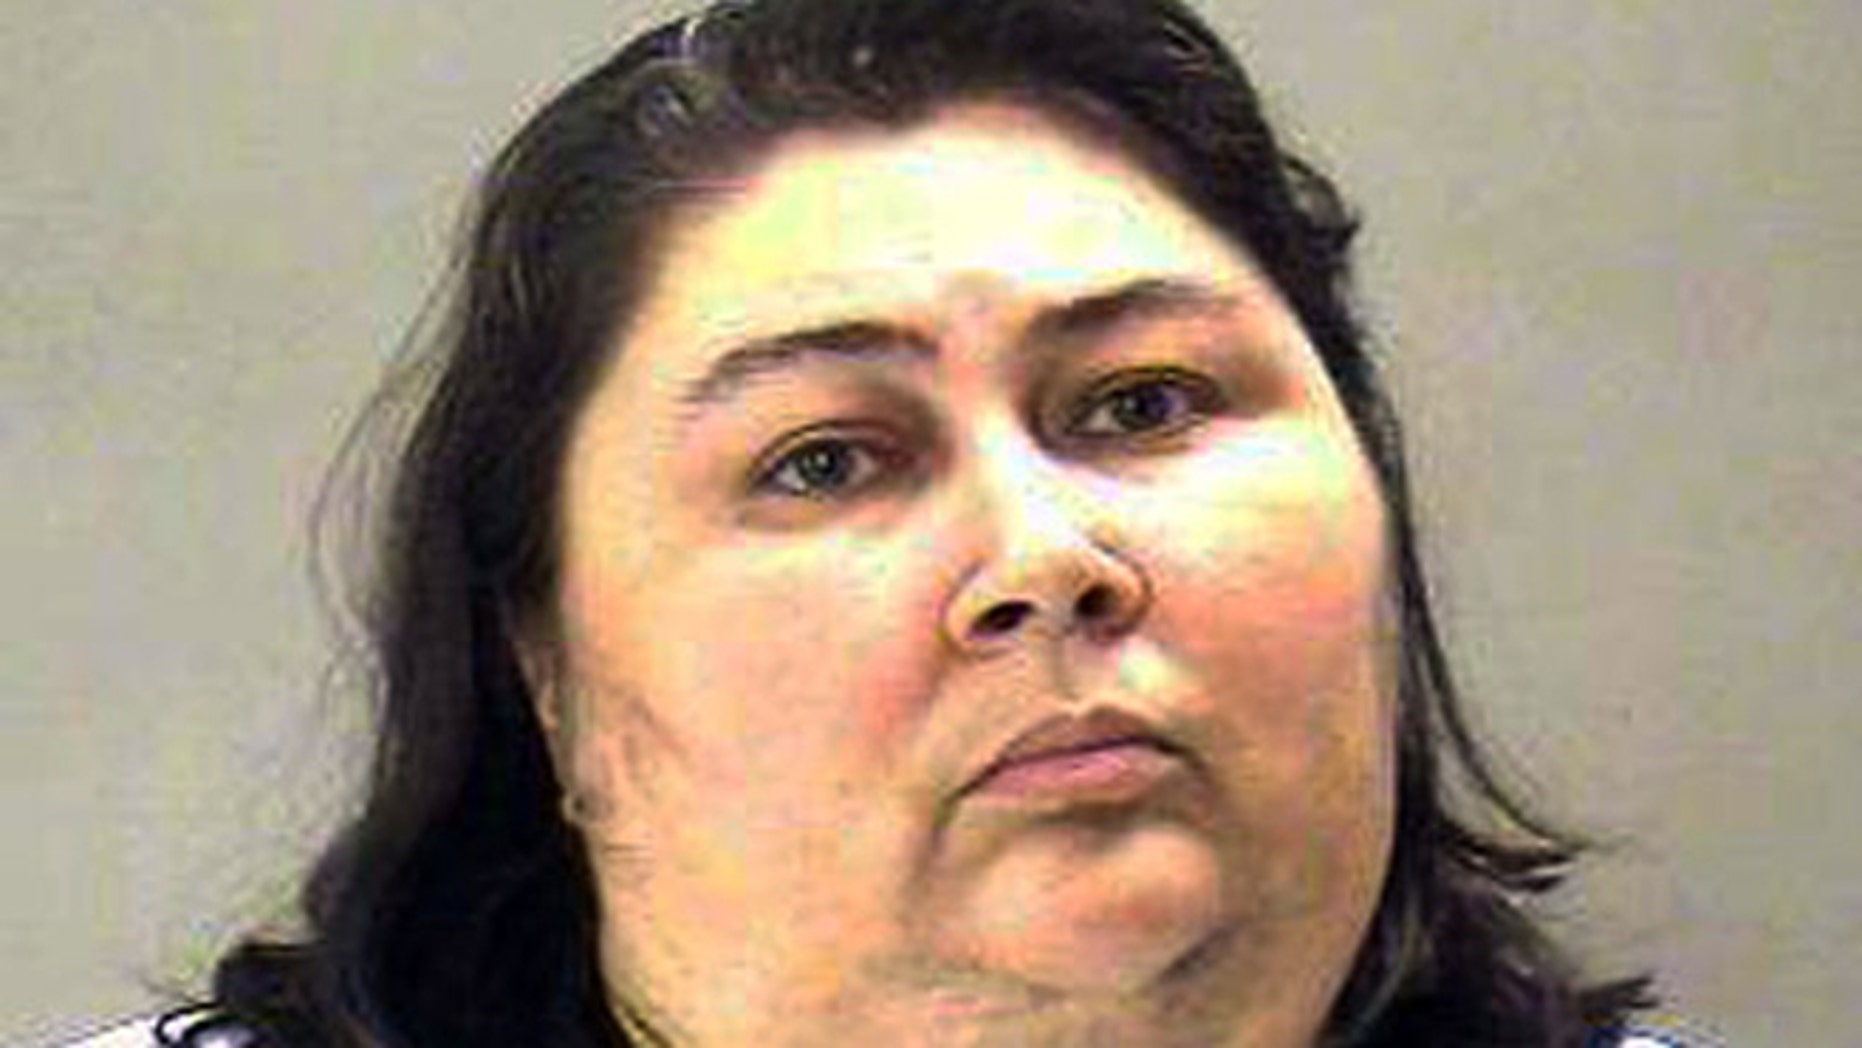 This undated booking photo provided by the Dallas County Sheriff Department shows Tina Marie Alberson, 44.